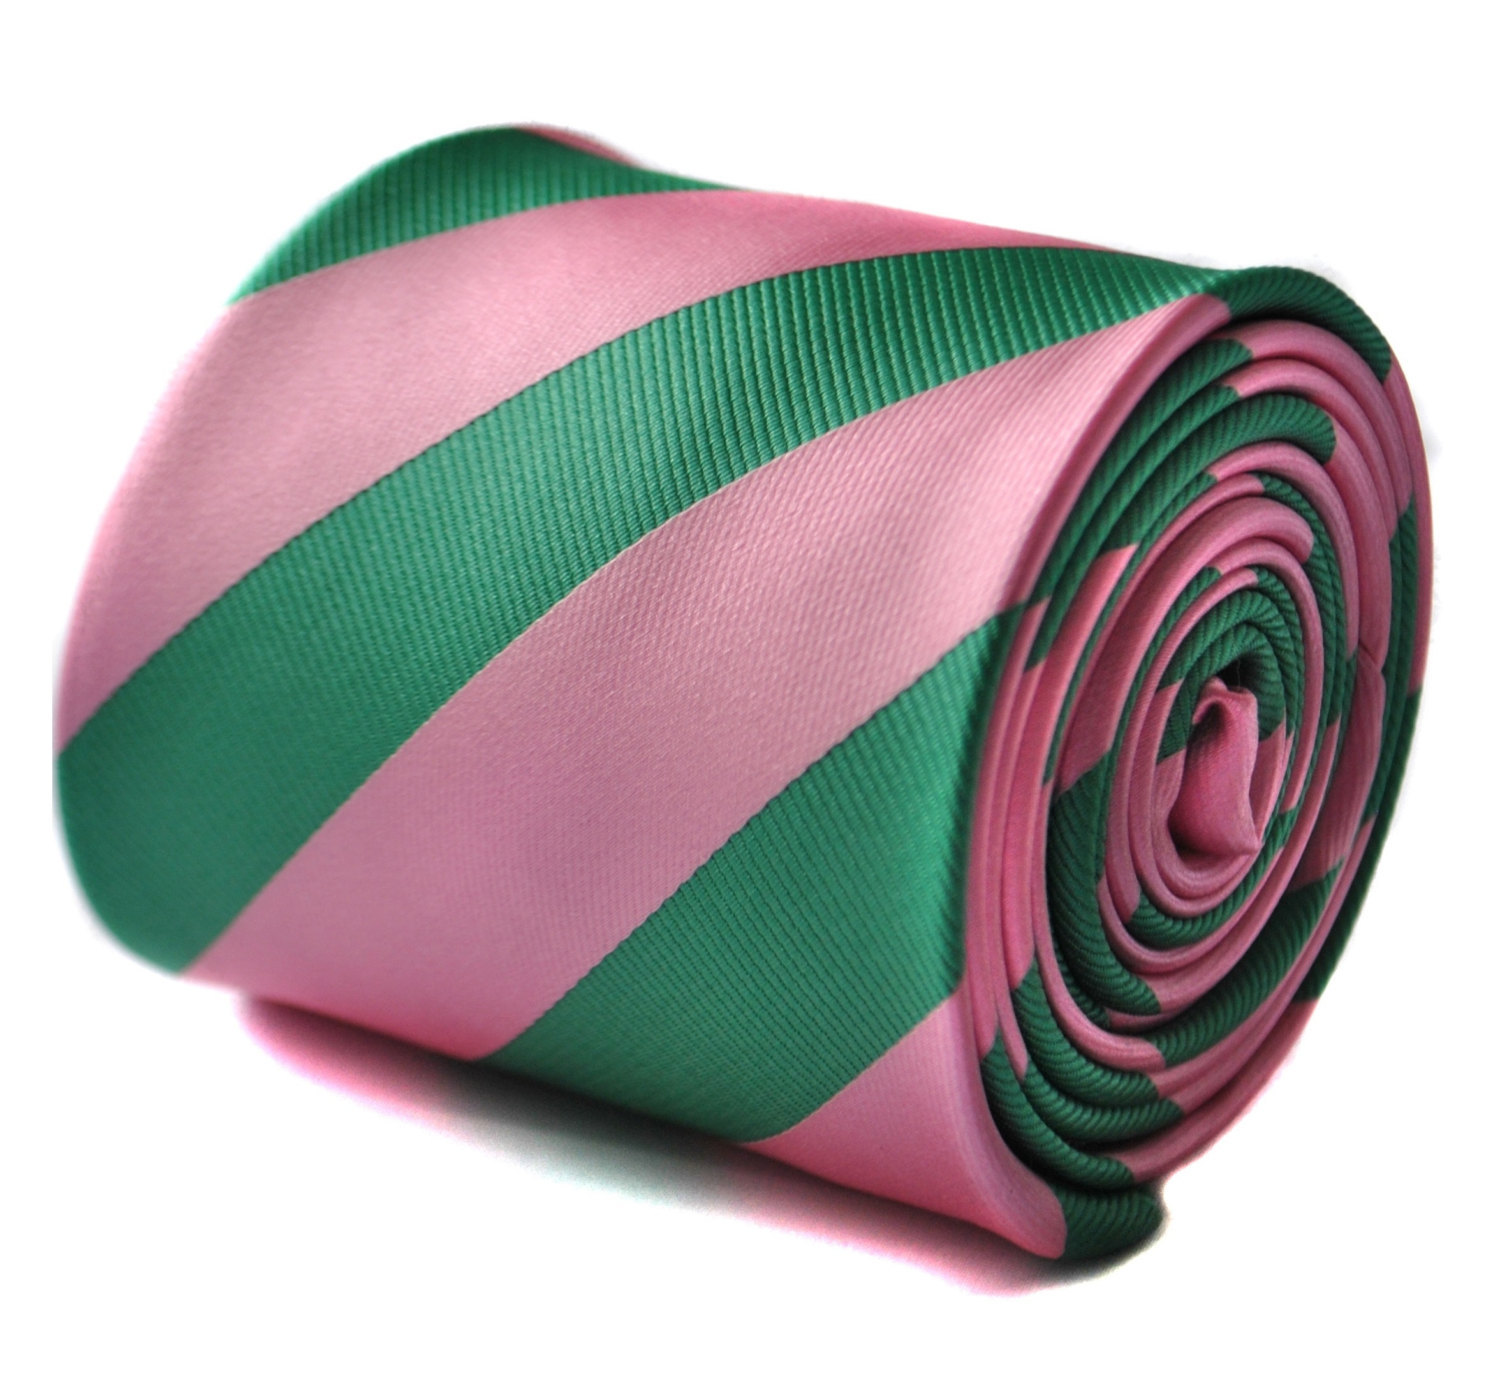 Green and pink barber striped tie with floral design to the rear by Frederick Th